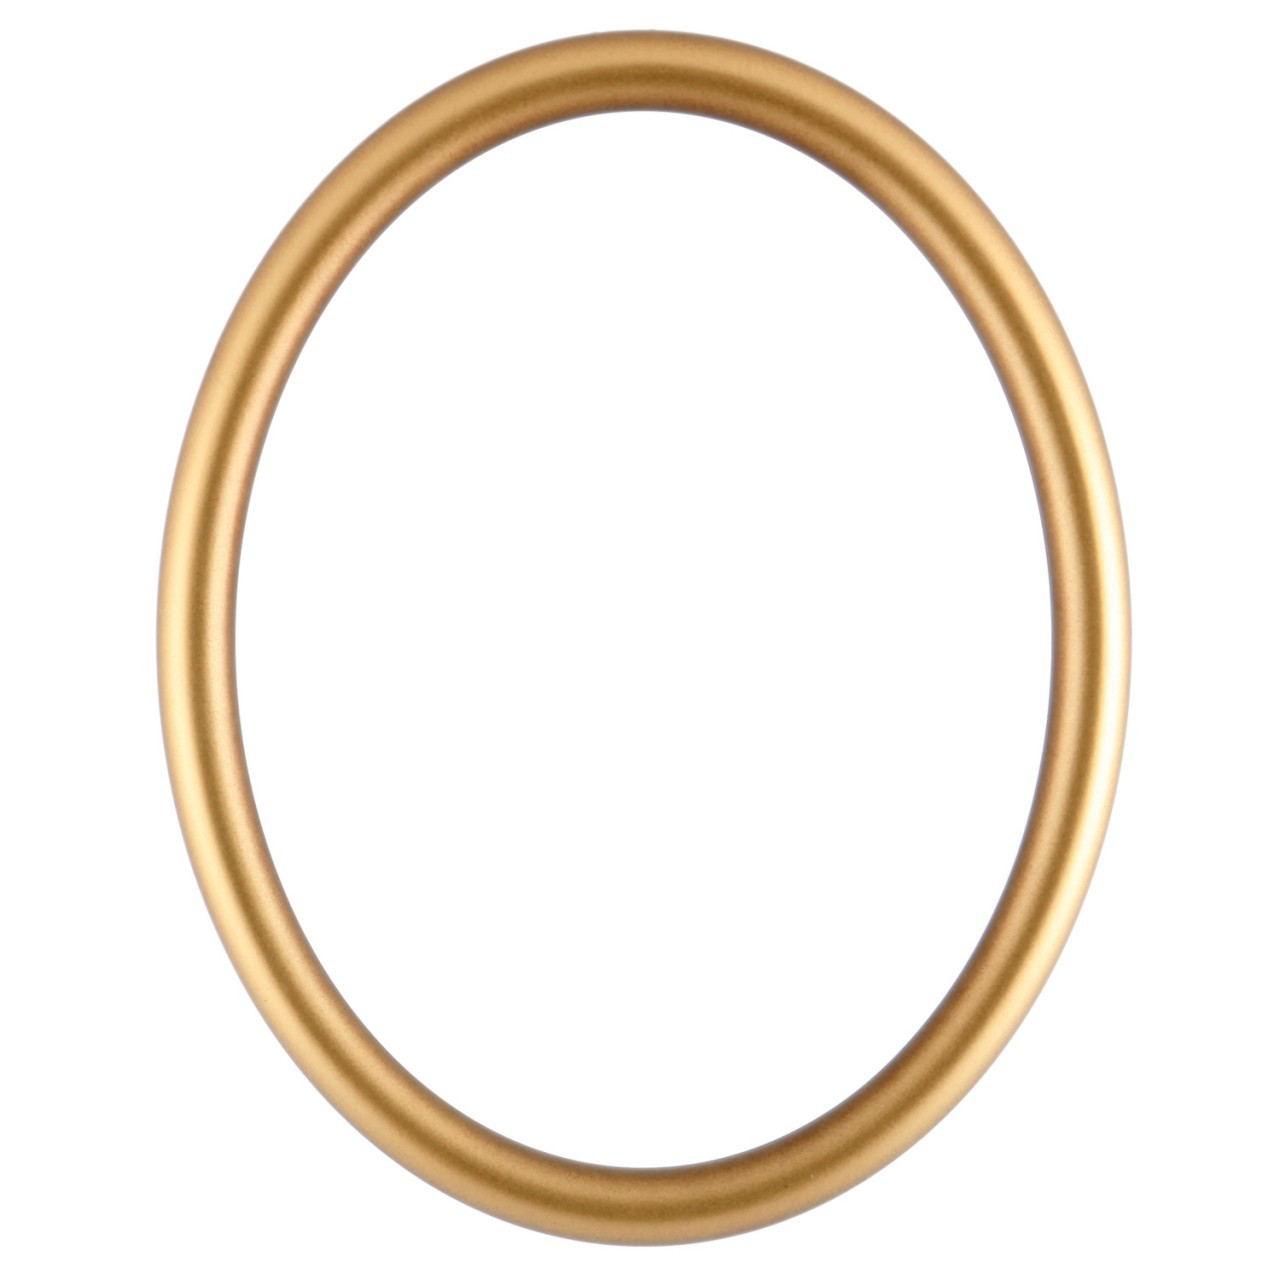 Oval Frame In Desert Gold Finish Antique Gold Picture